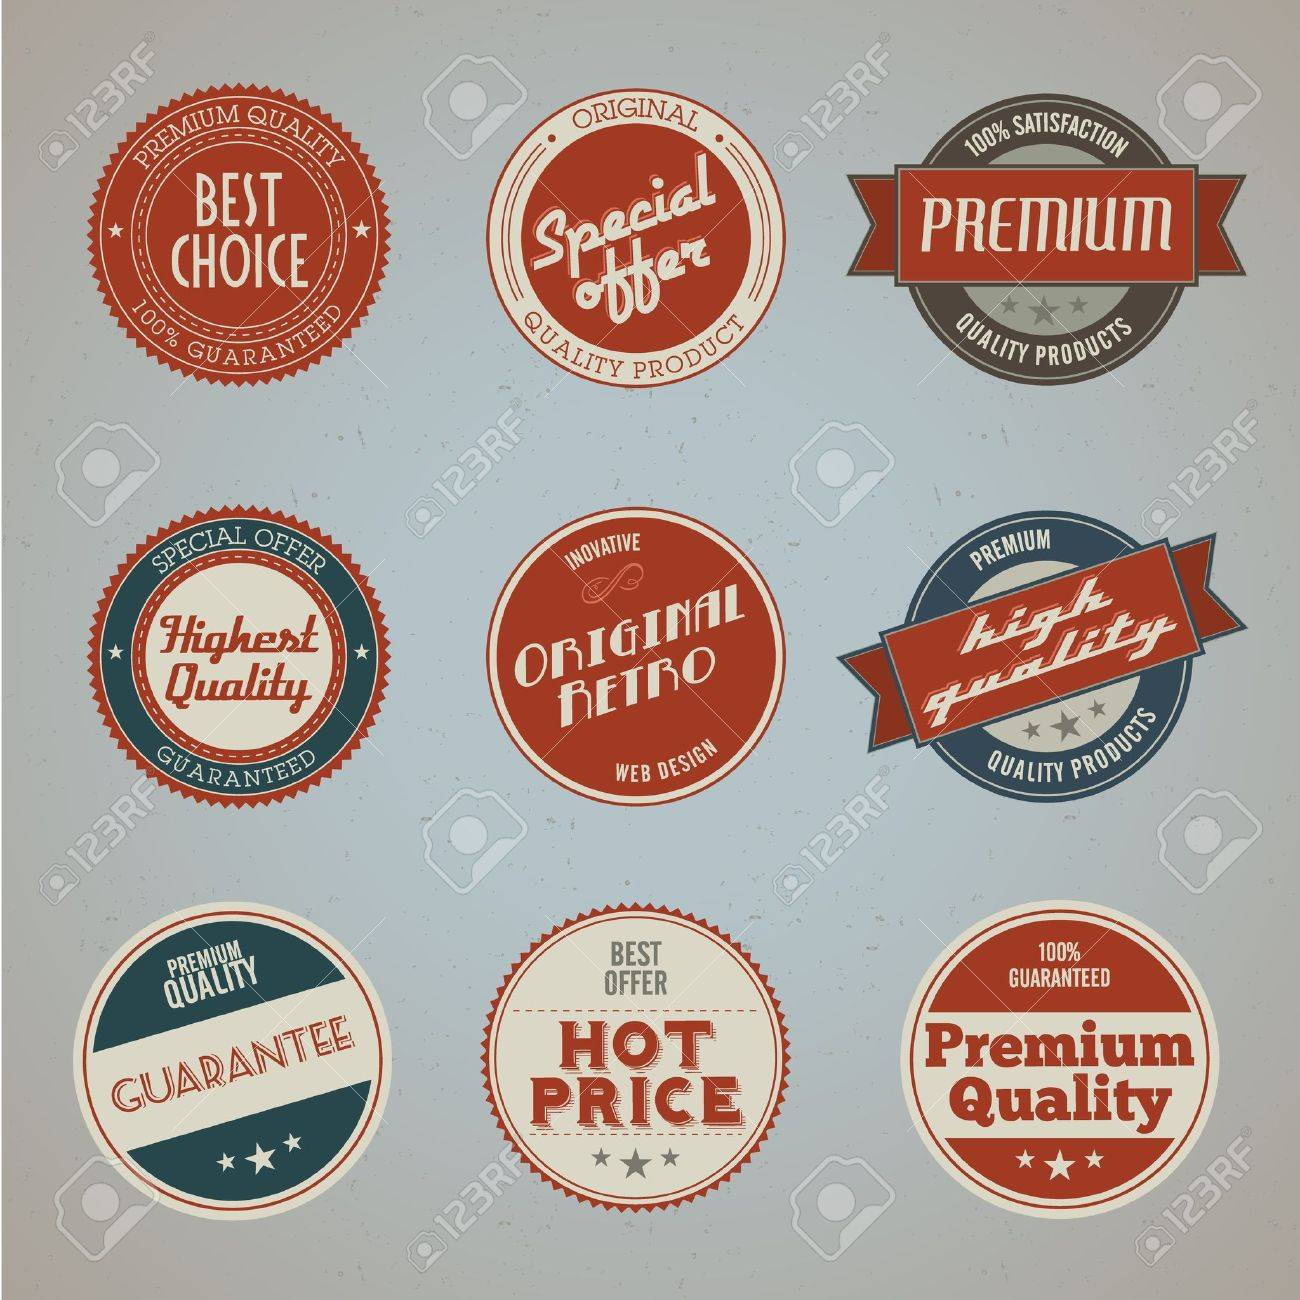 Set of vintage styled premium quality labels - 11814285